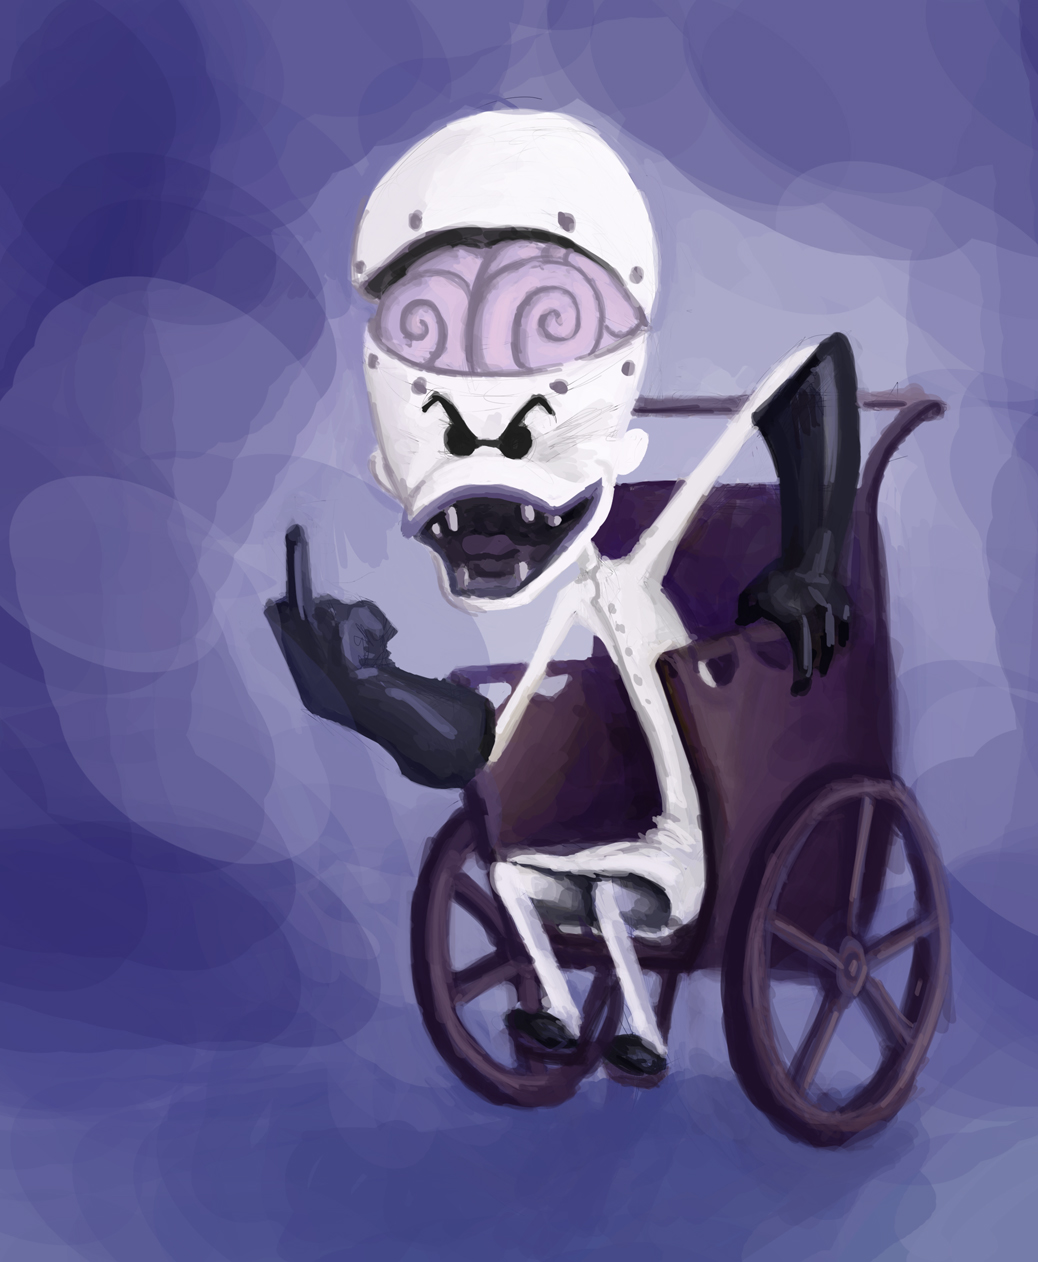 PC Illustration Quest: the Nightmare Before Christmas: Dr. Finklestein